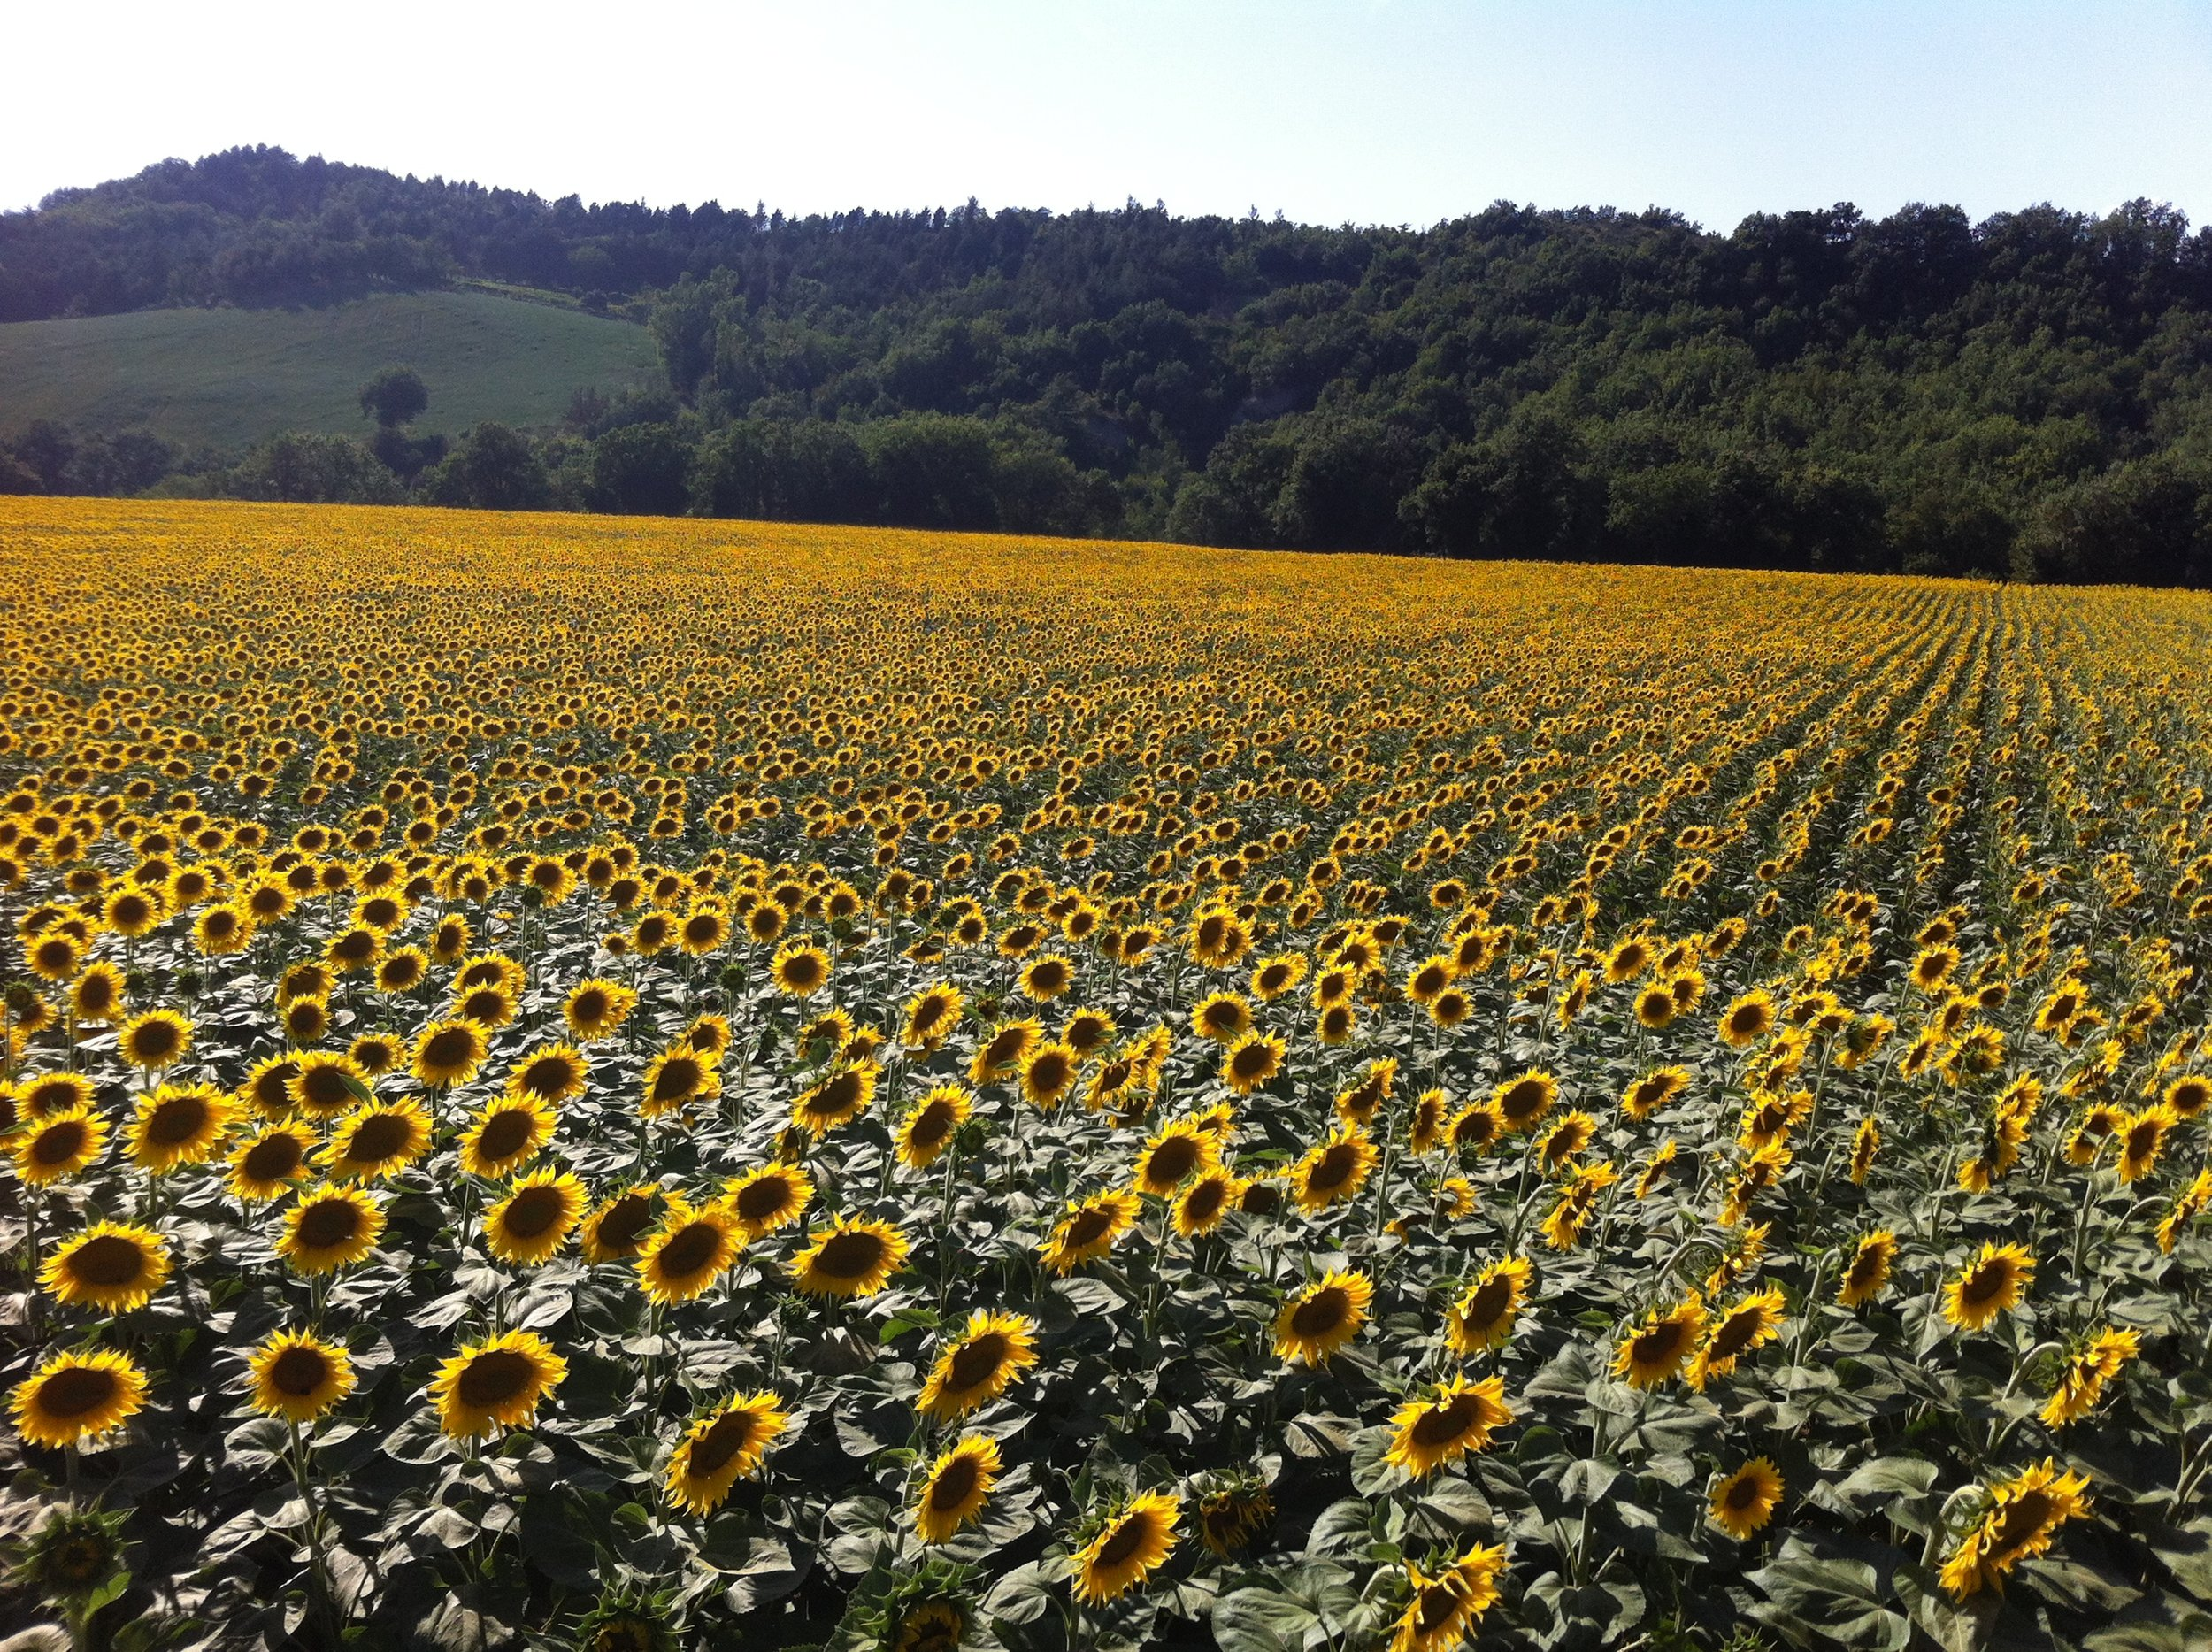 Sunflower Hunt - This tour features a portrait and custom photo shoot is an iconic sunflower setting. You'll be swept away by the fields of sunflowers blooming in vibrant yellow and orange colors.